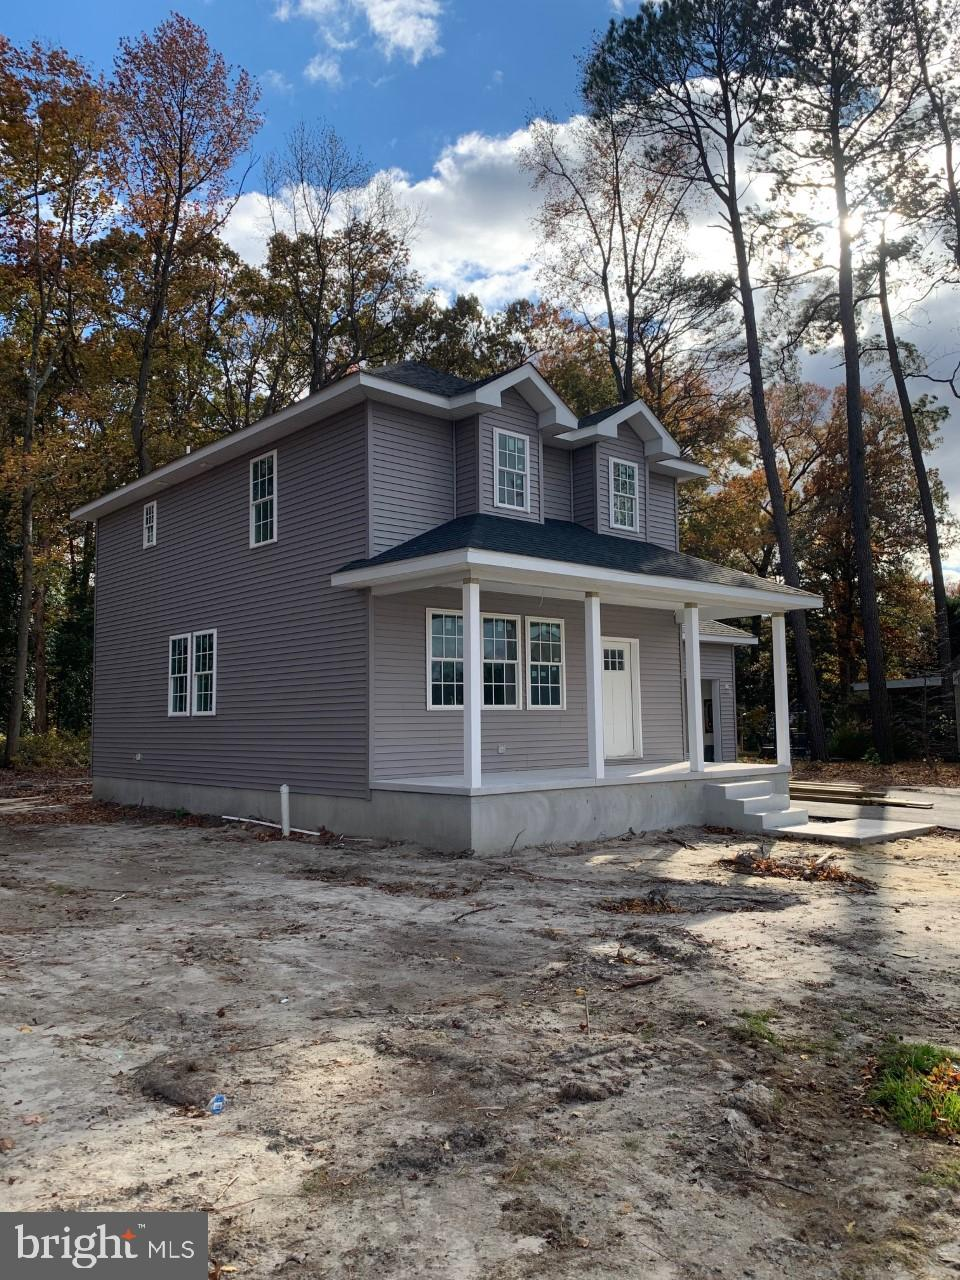 New Construction! Quality built home by Hartnett Homes. Located in a great community, close to every